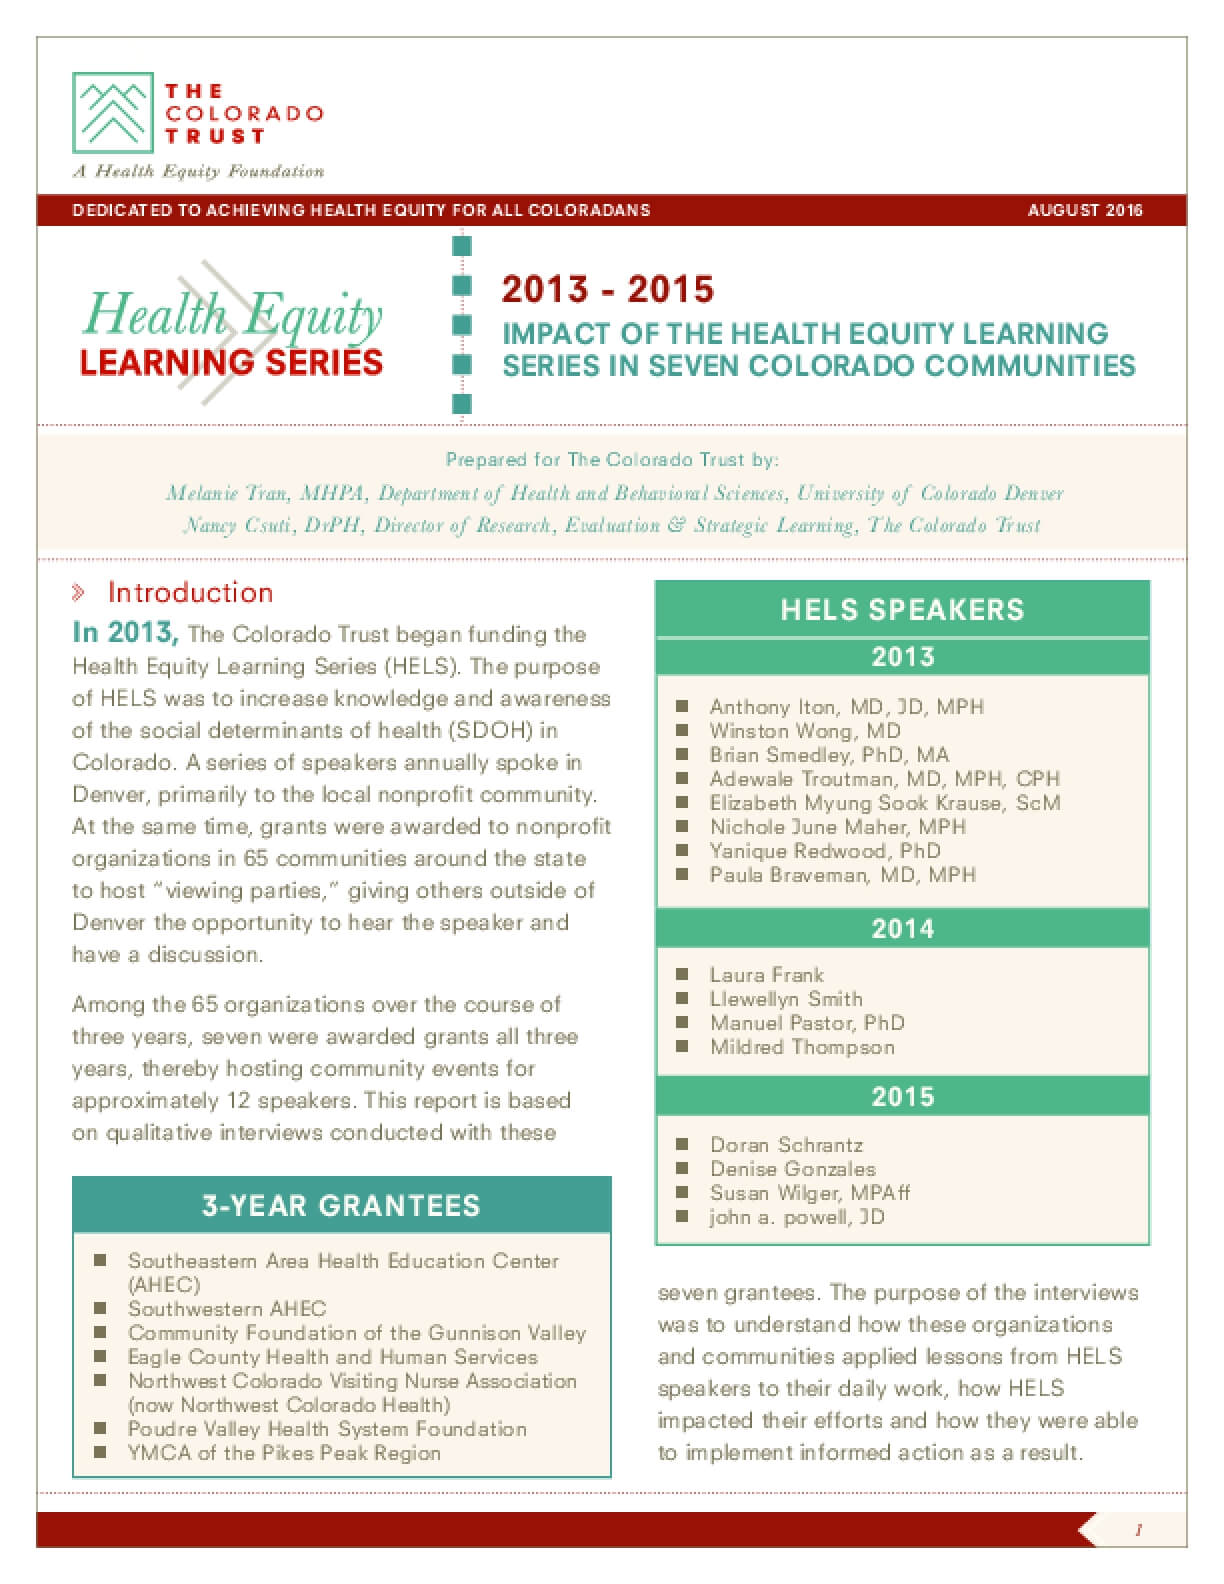 Impact of the Health Equity Learning Series in Seven Colorado Communities: 2013 - 2015